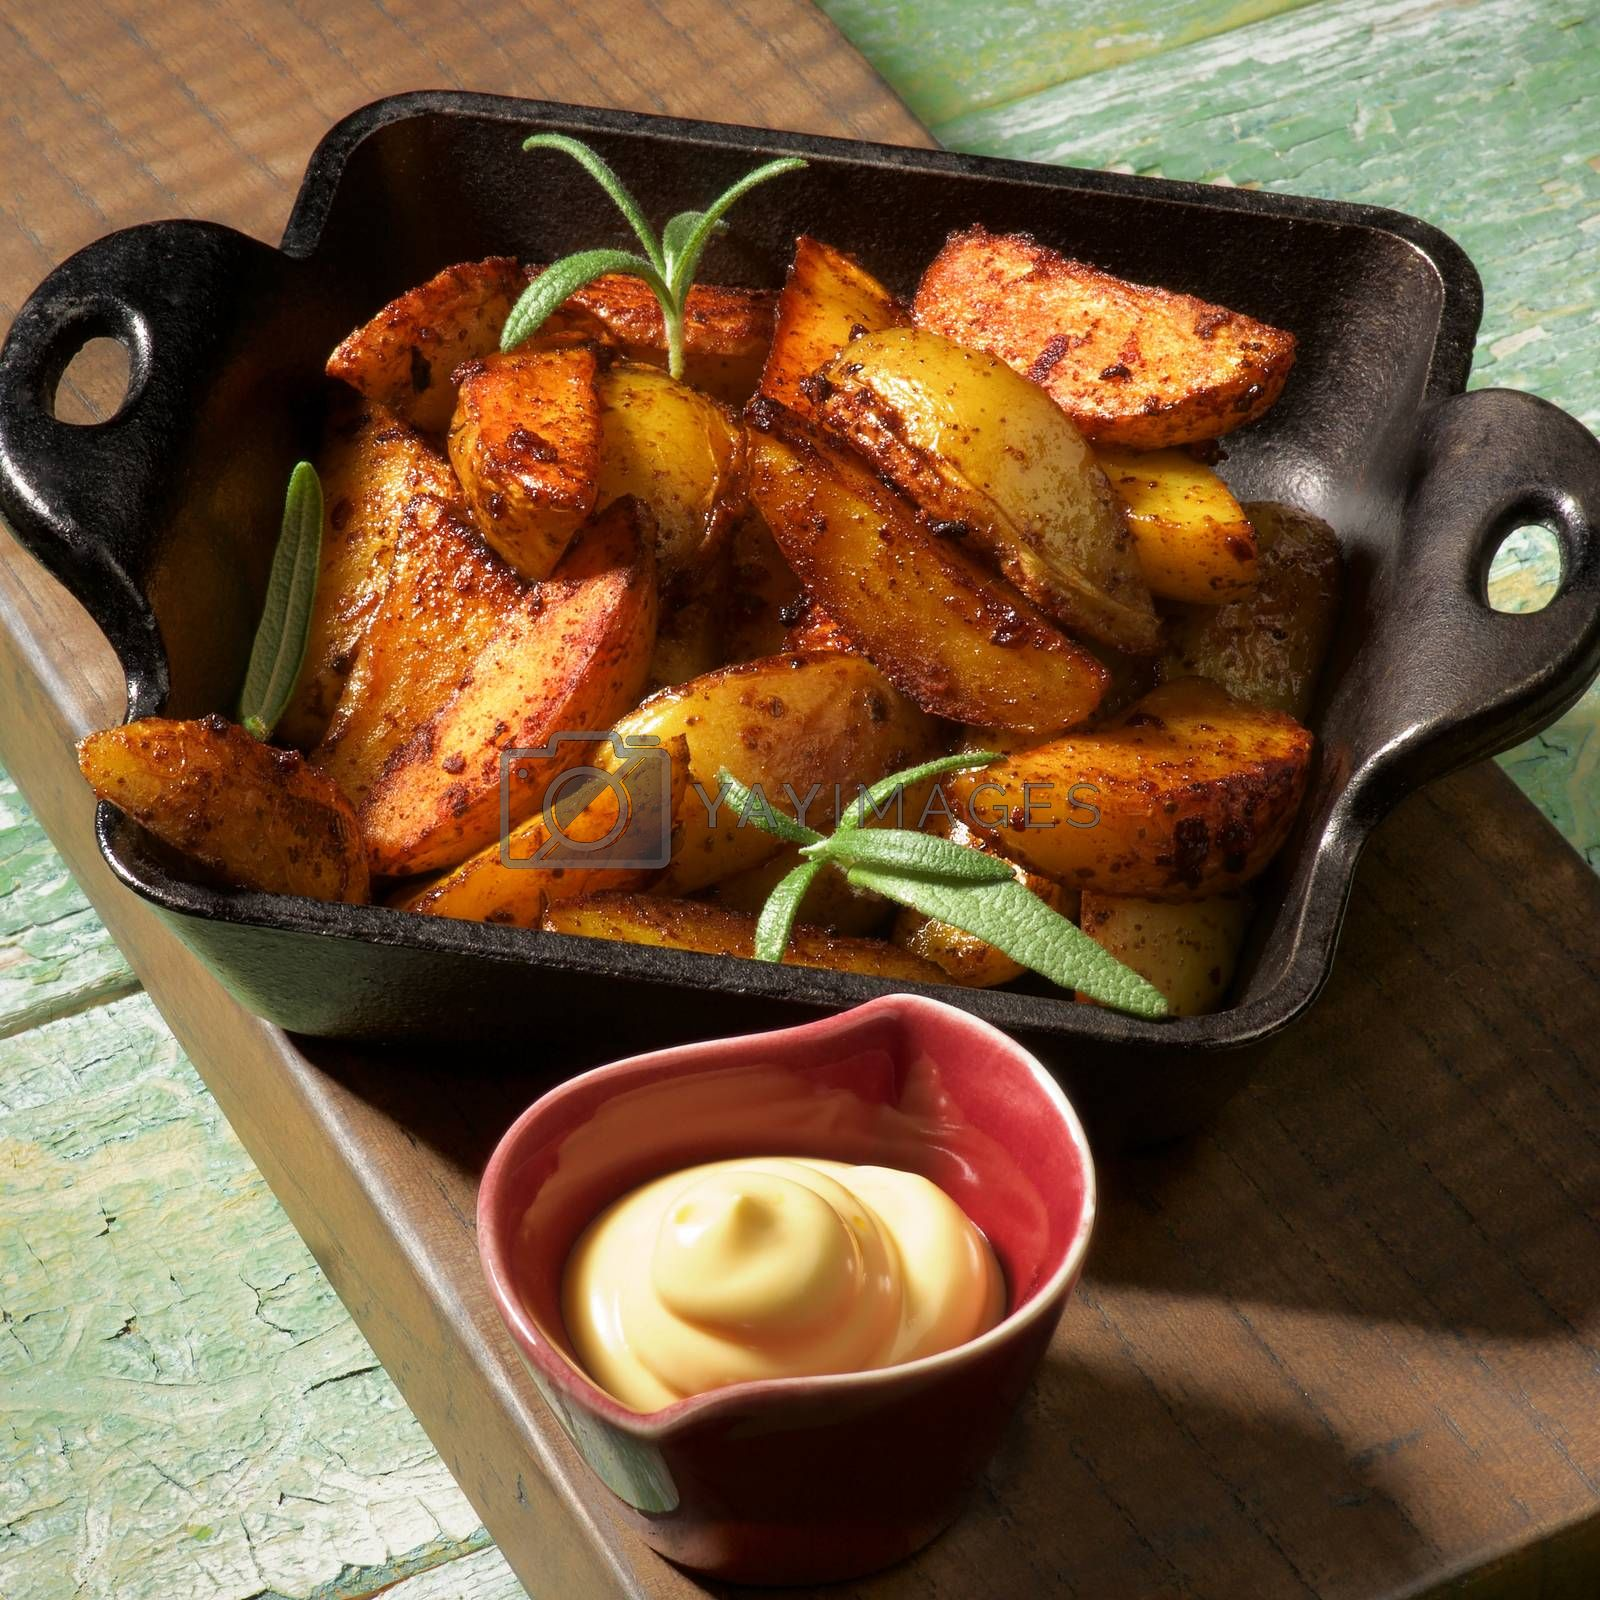 Hot Snack with Delicious Roasted Potato Wedges in Black Cast-Iron Pan and Cheese Sauce on Wooden Board closeup in Shadow